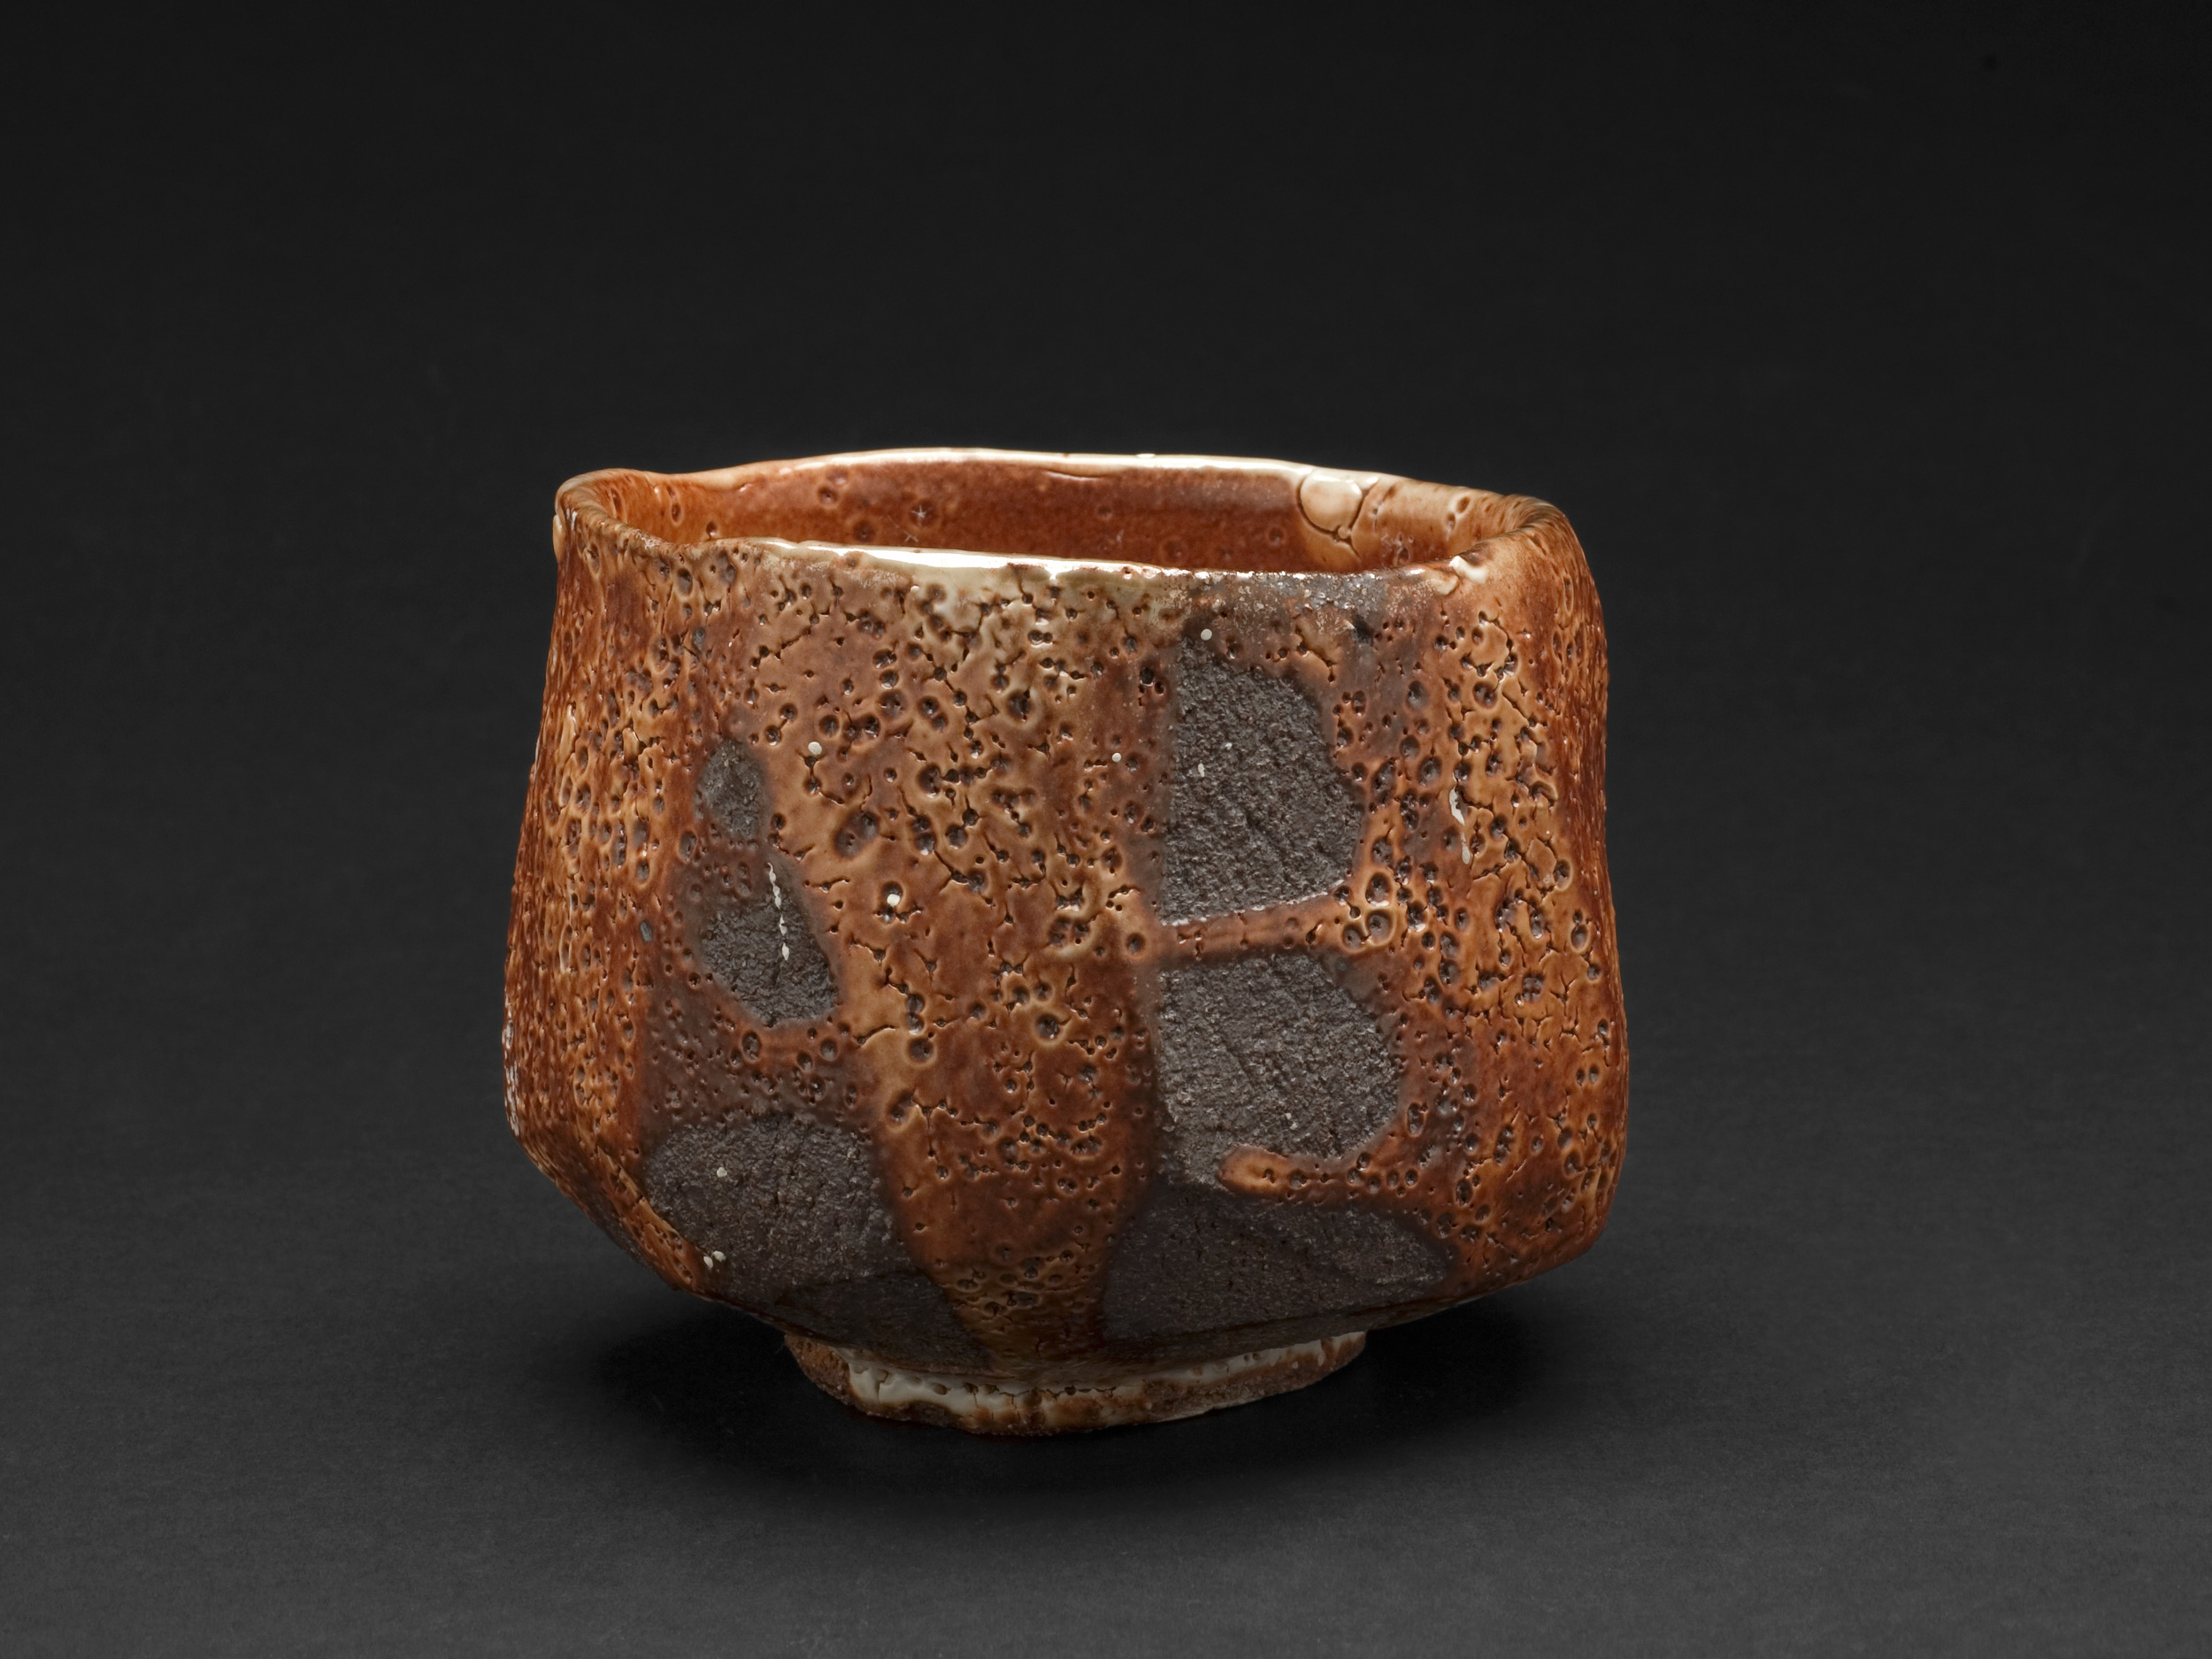 Lisa Hammond    Red Shino Faceted Chawan  , 2013 Crank clay thrown cut and stretched, hand cut foot with red pine knife, fired in reduction, oil fired soda atmosphere to 1300 degree 3.75 x 4.5 inches / 9.5 x 11.4 cm / LHa 5